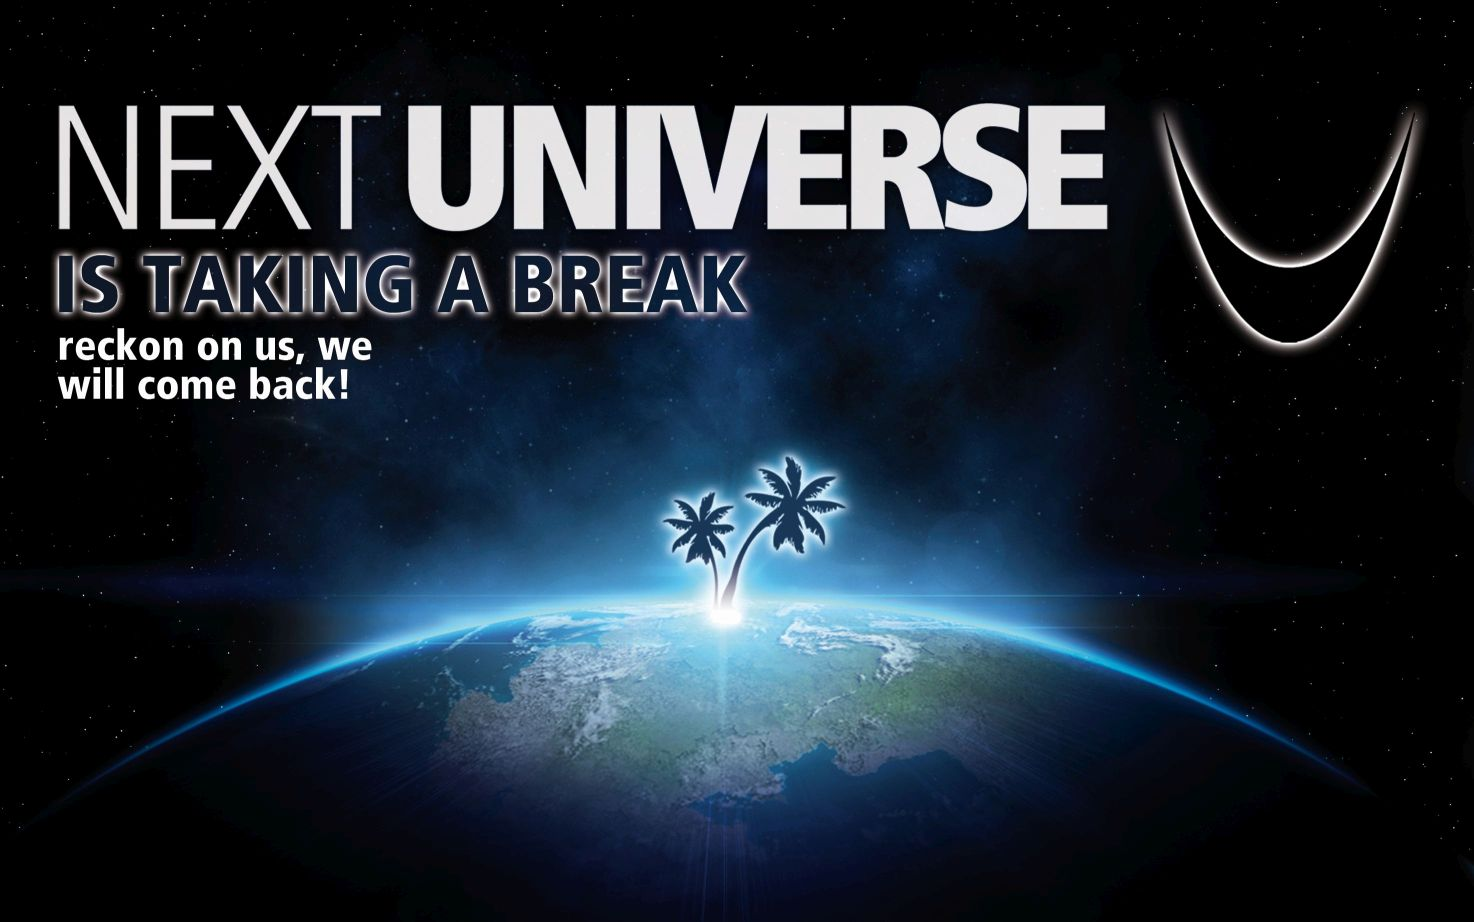 NEXT UNIVERSE is taking a break.